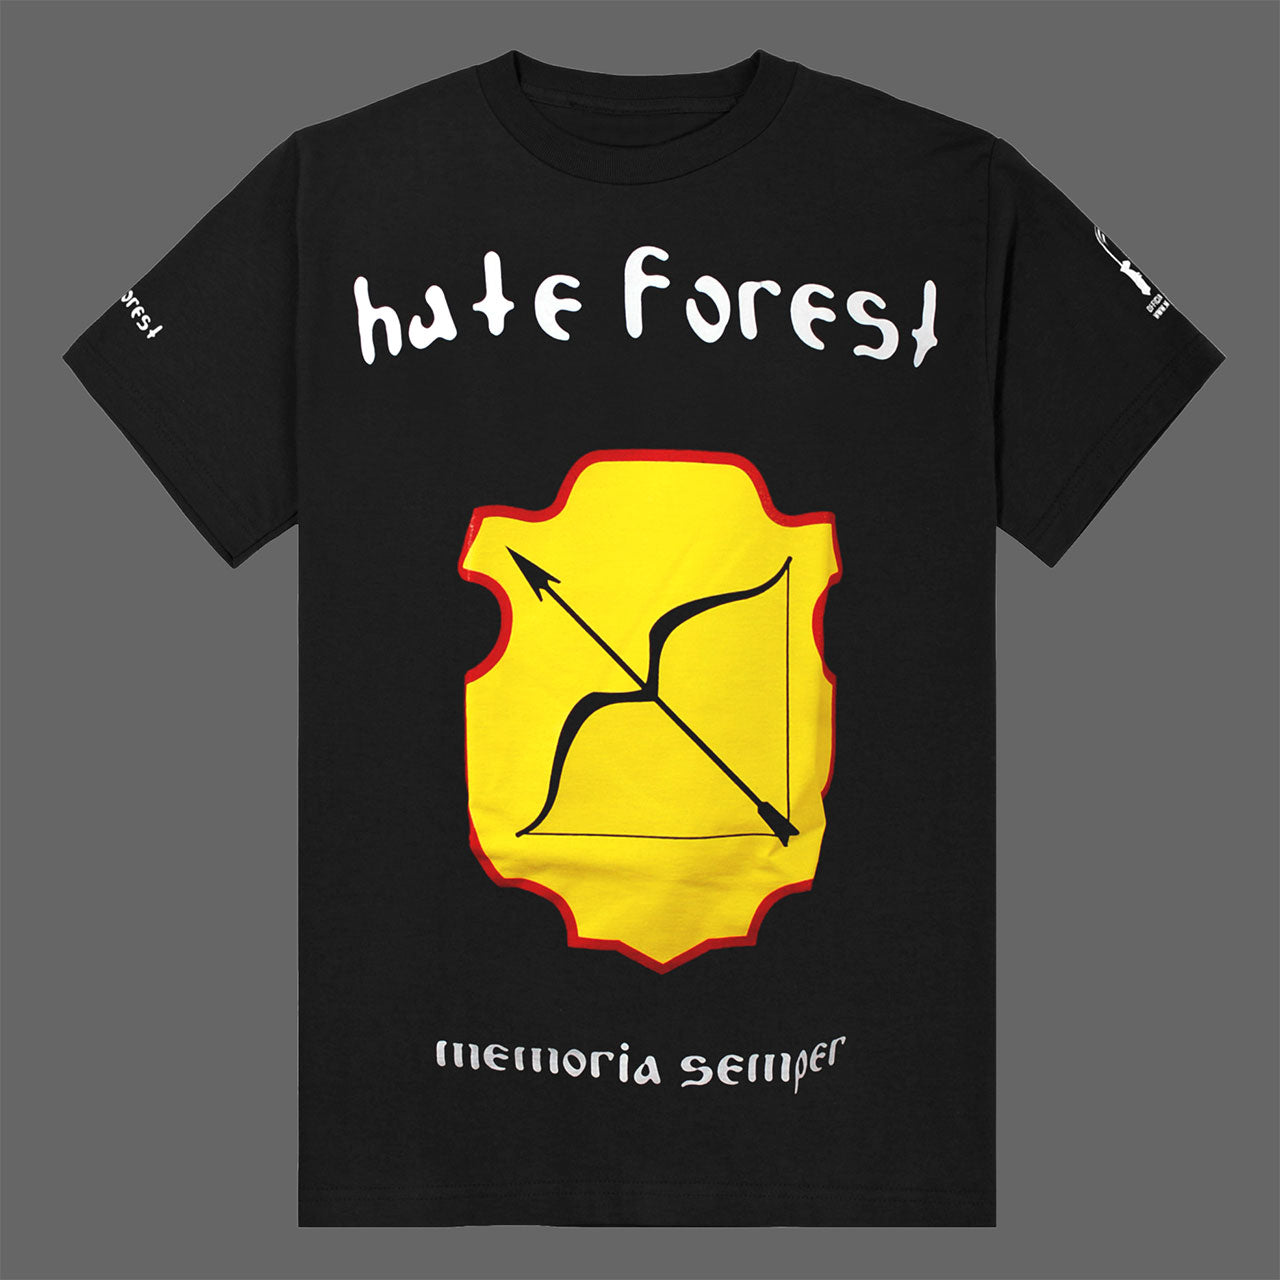 Hate Forest - Memoria Semper (T-Shirt)